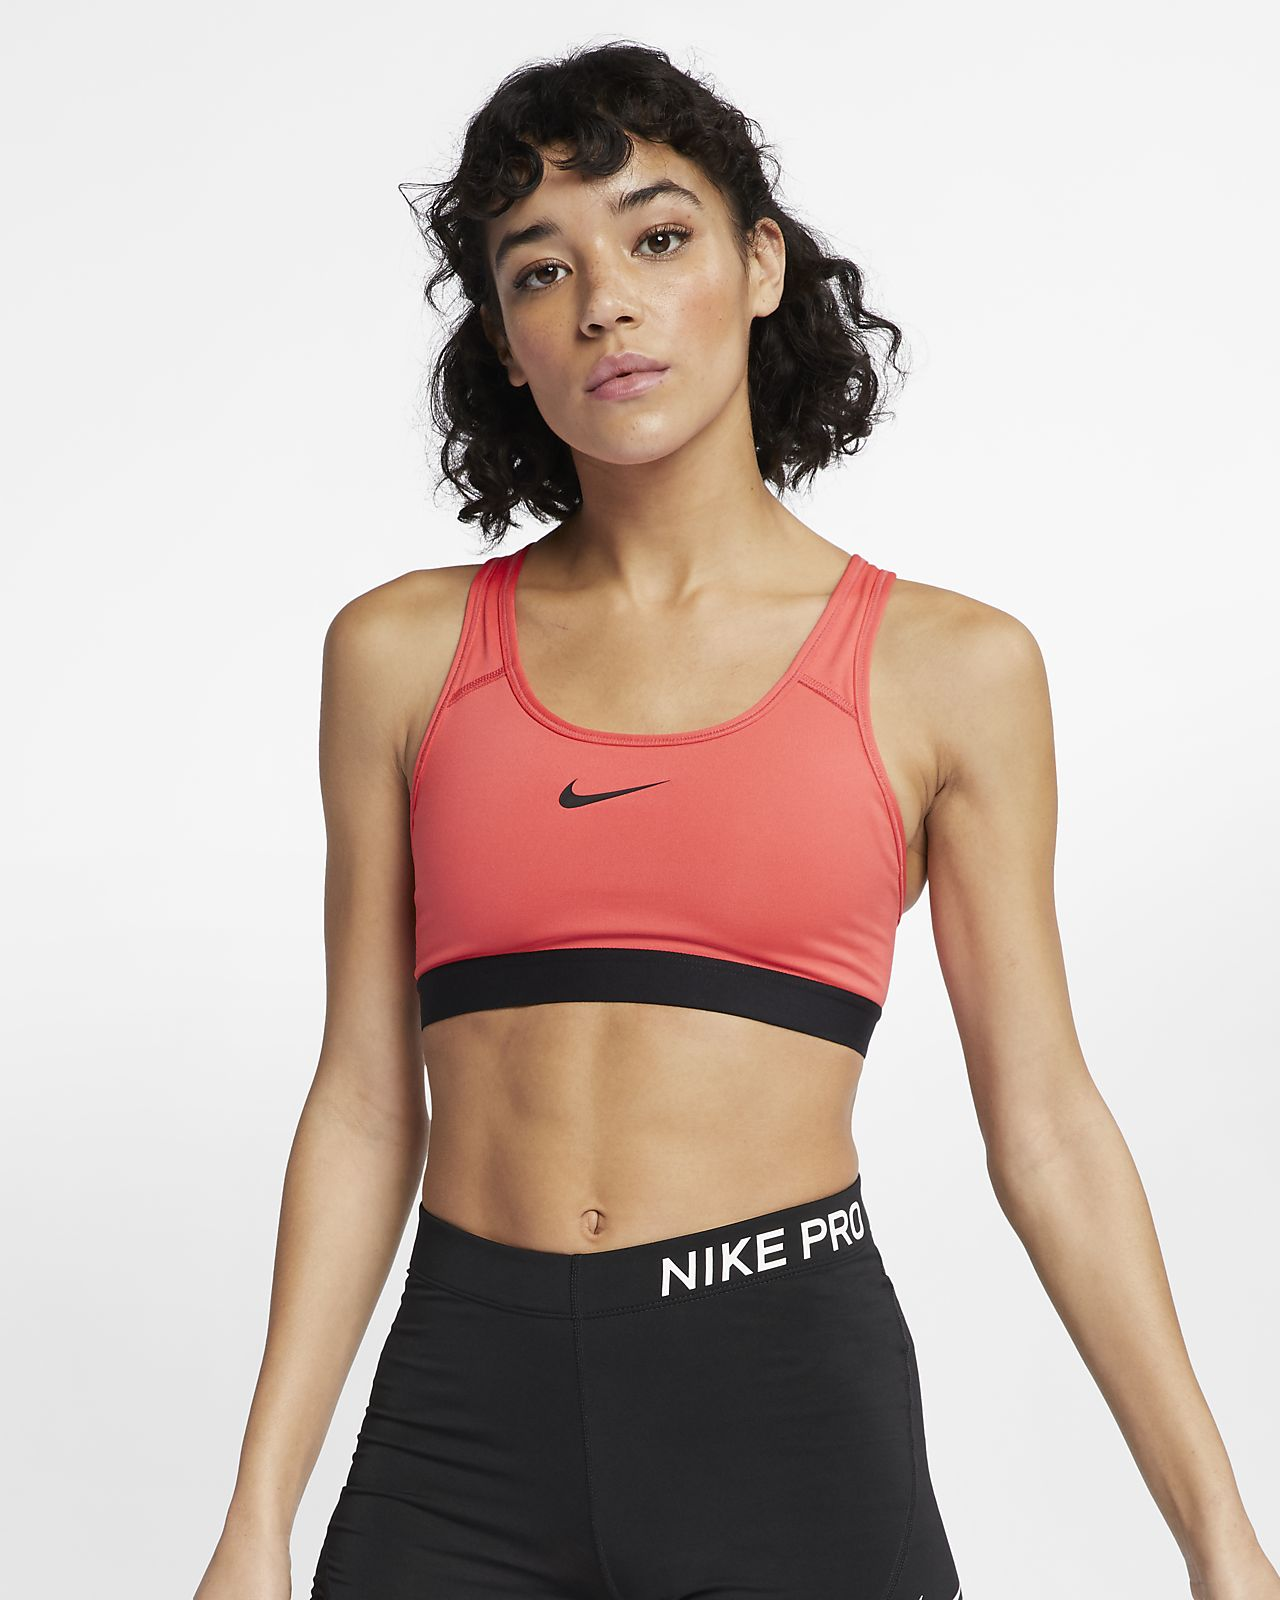 b8d02a655b Nike Classic Padded Women s Medium-Support Sports Bra. Nike.com